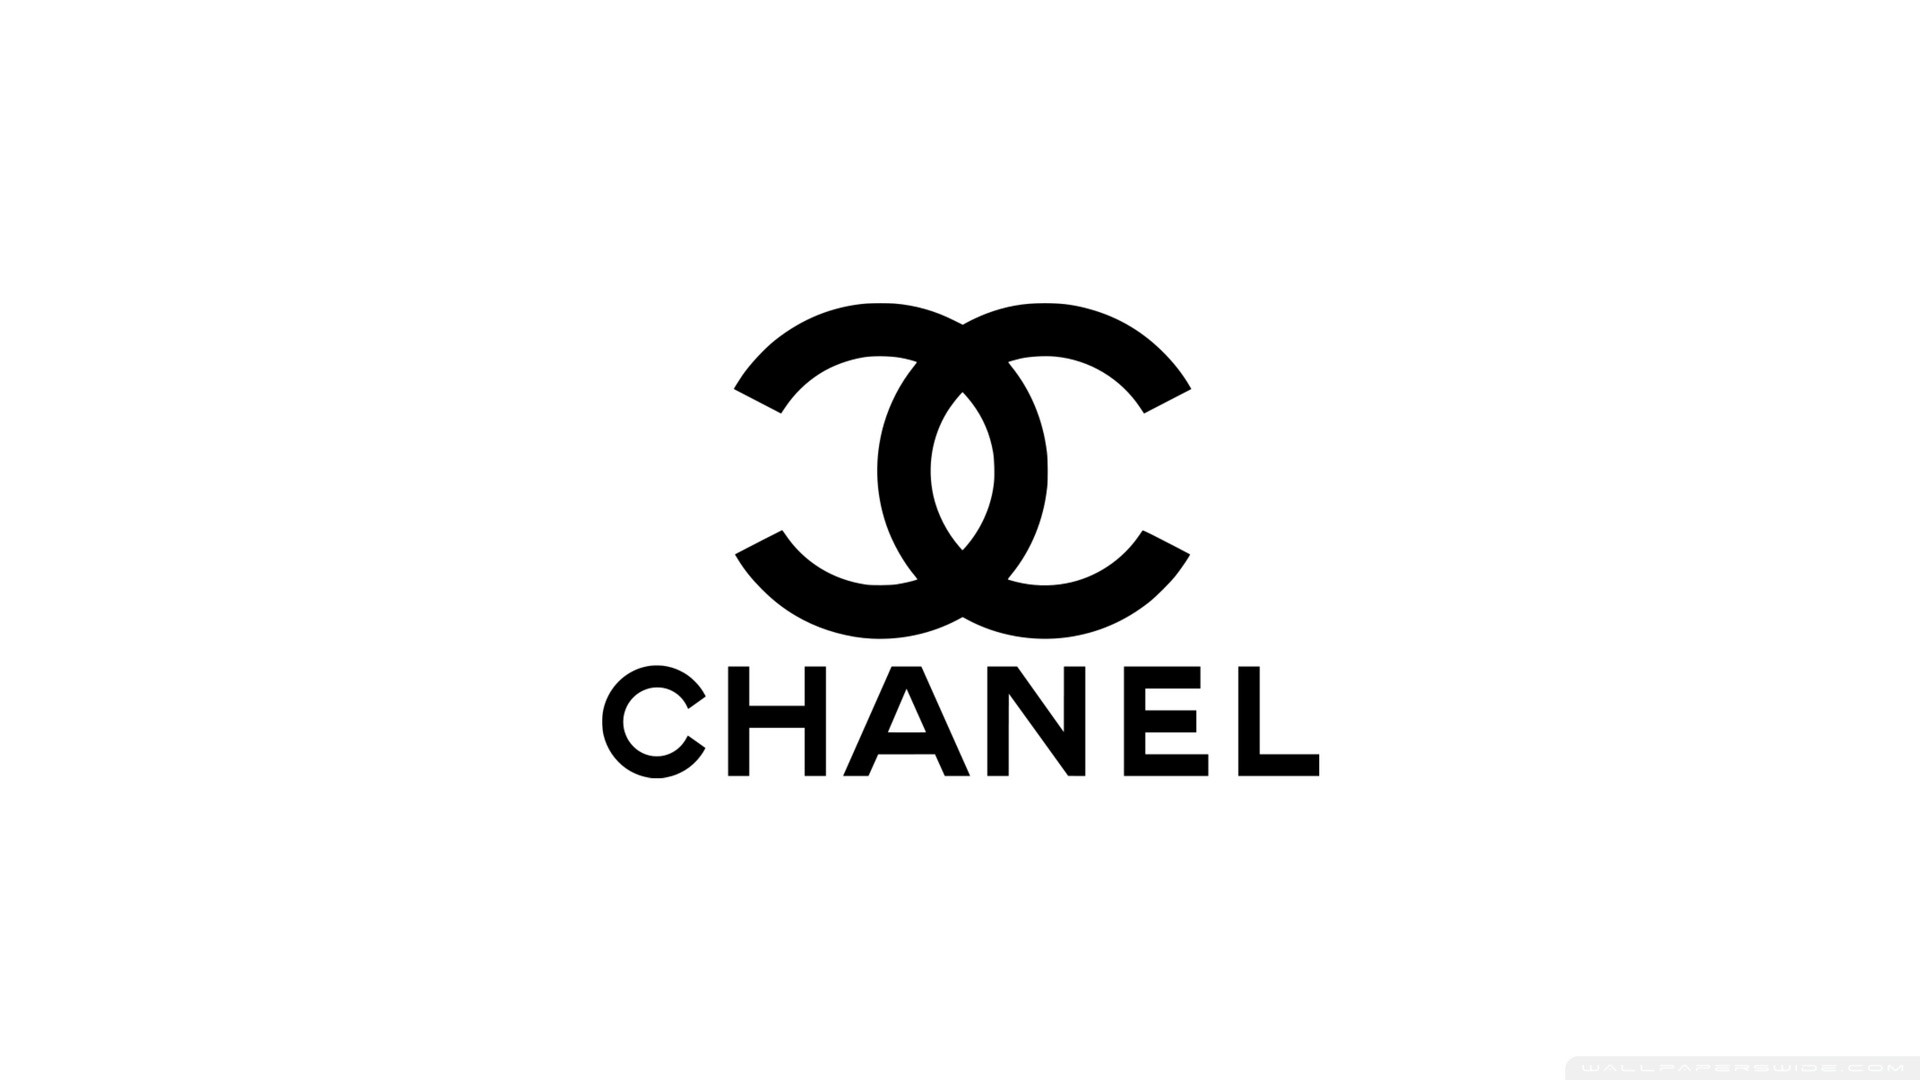 Hd Phone Wallpapers Fall Chanel Wallpaper For Iphone 62 Images